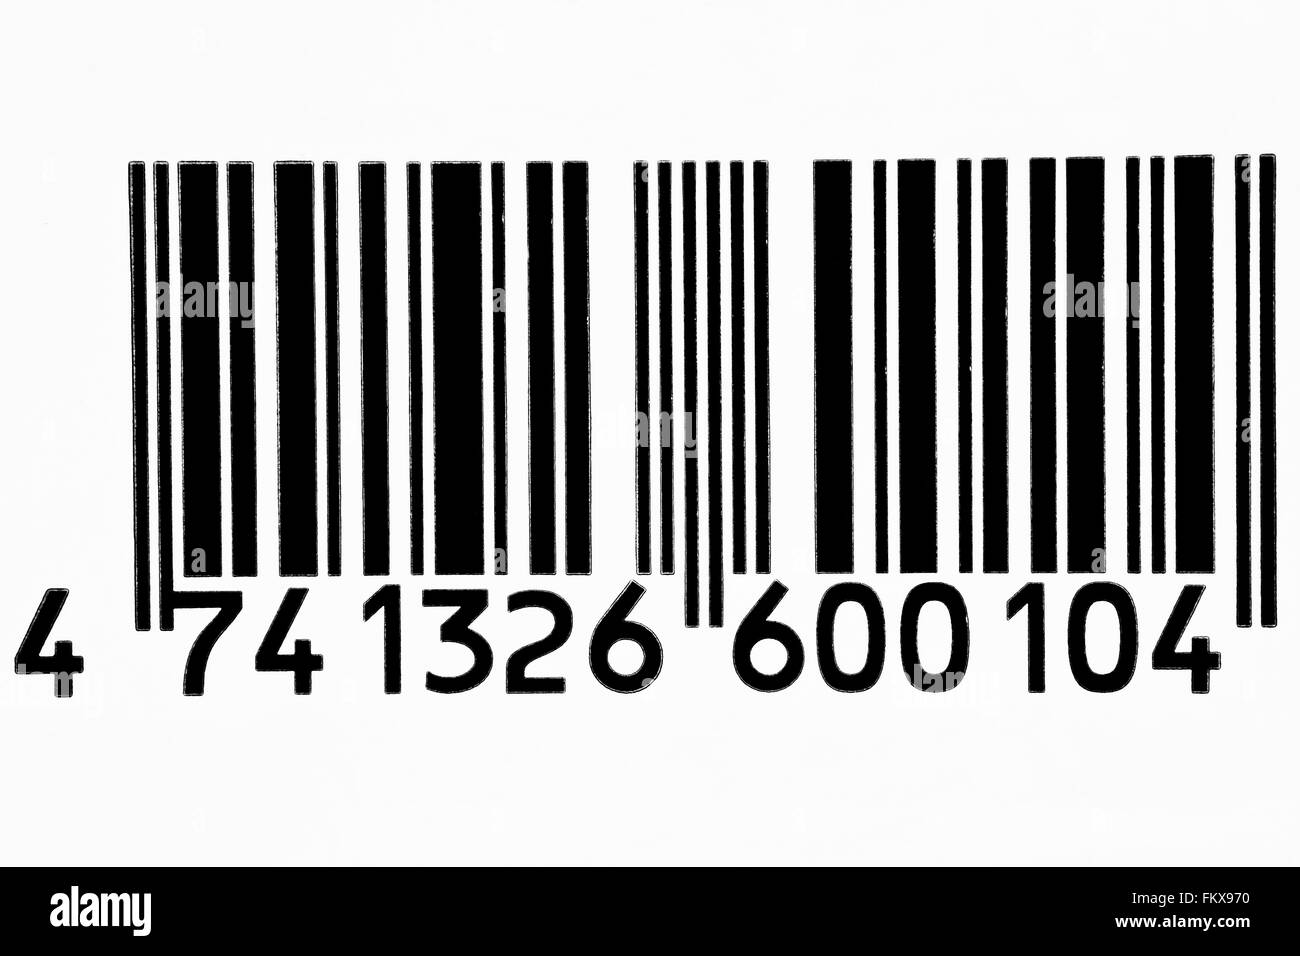 Frontal view black barcode in white background - Stock Image